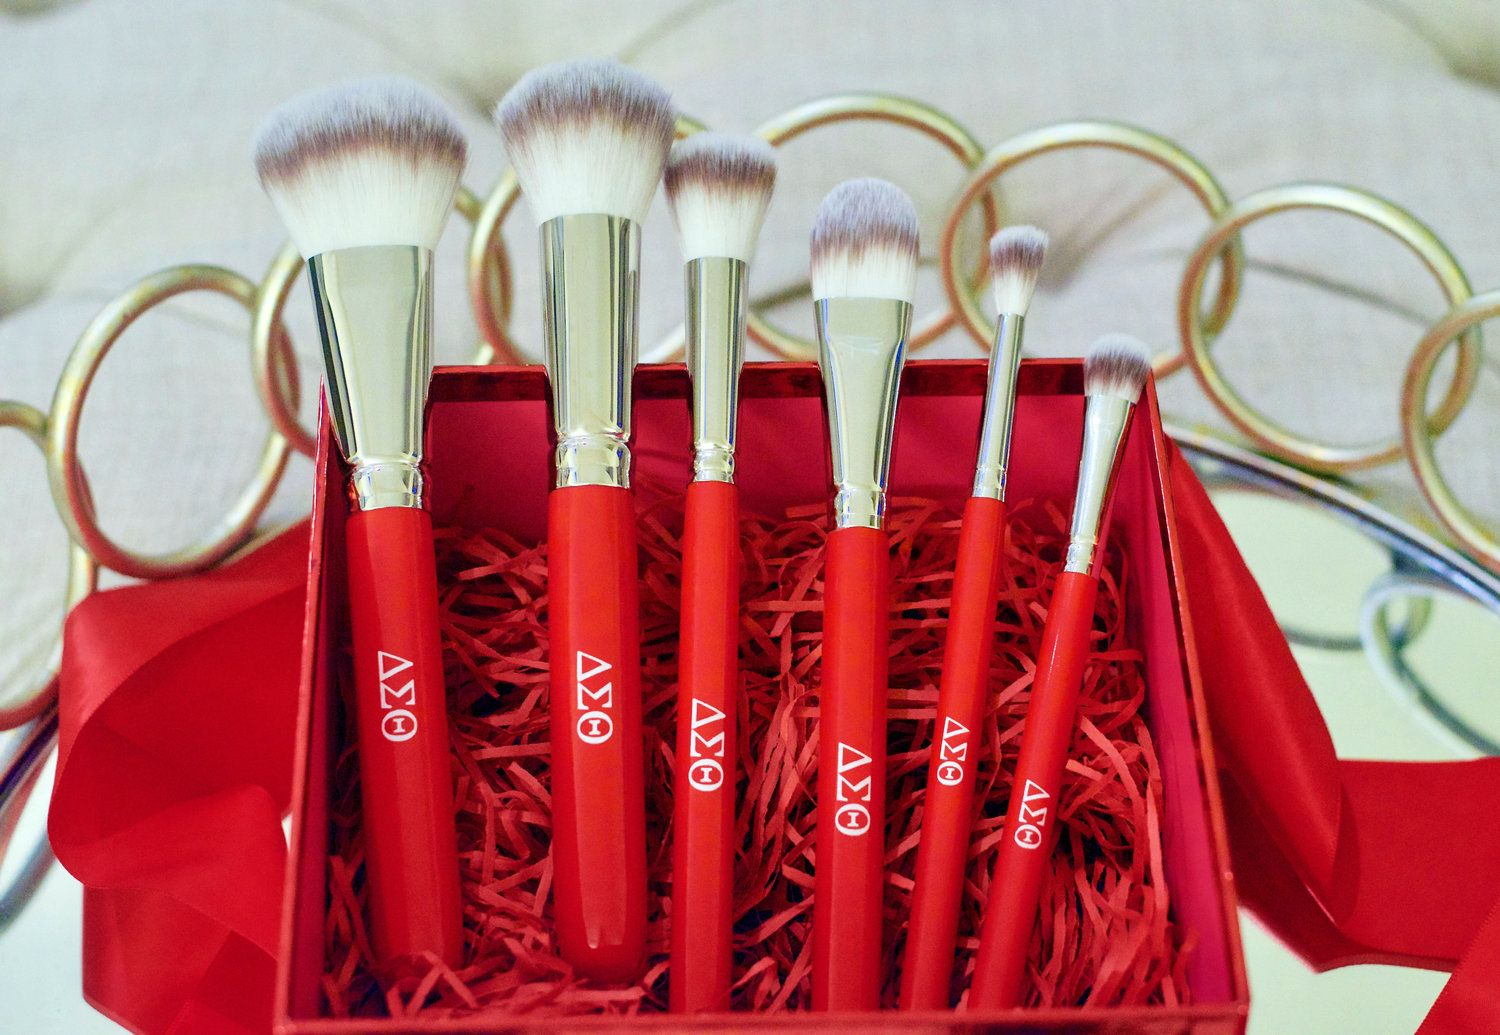 Delta sigma theta makeup brush set in 2020 Makeup brush